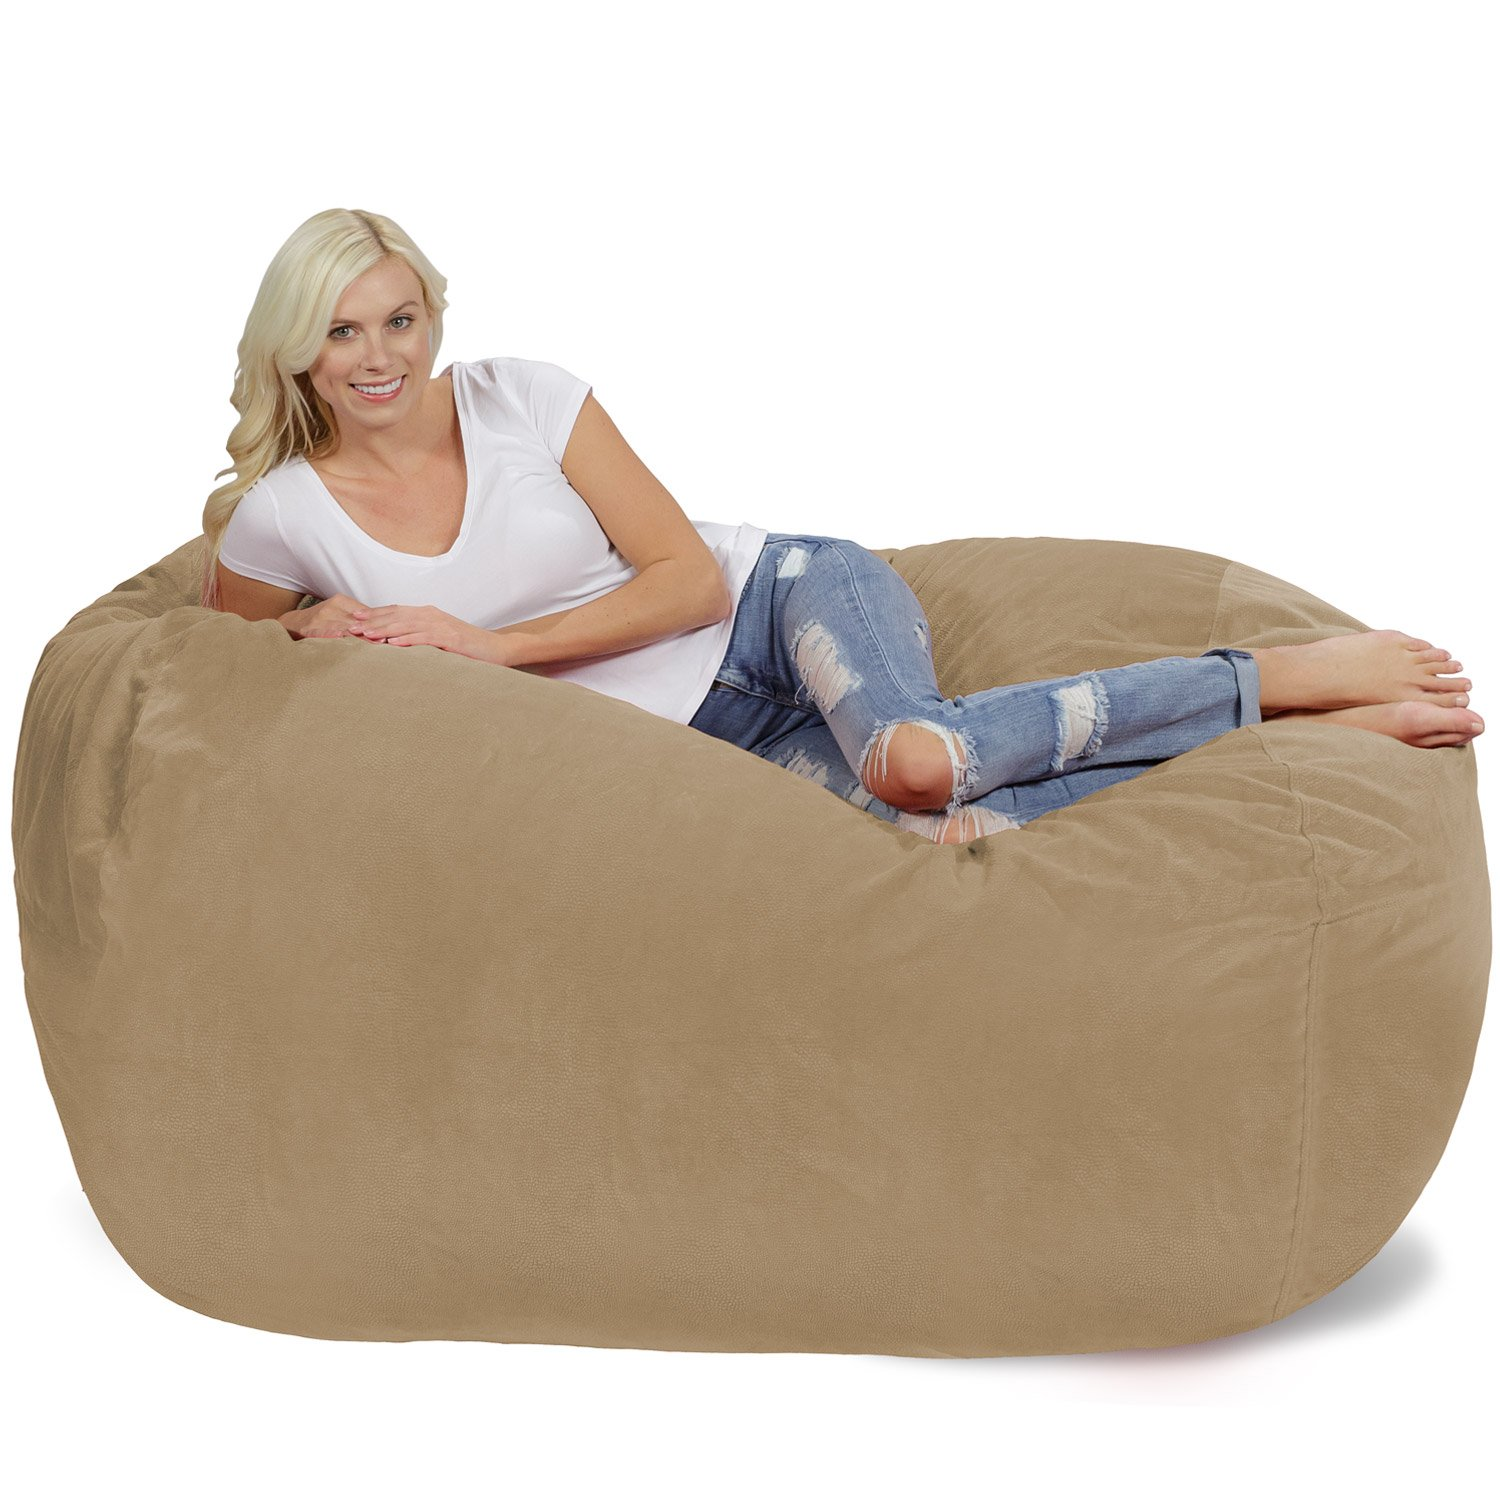 Black Chill Sack Bean Bag Chair Big Sofa with Soft Micro Fiber Cover Huge 6 Memory Foam Furniture Bag and Large Lounger